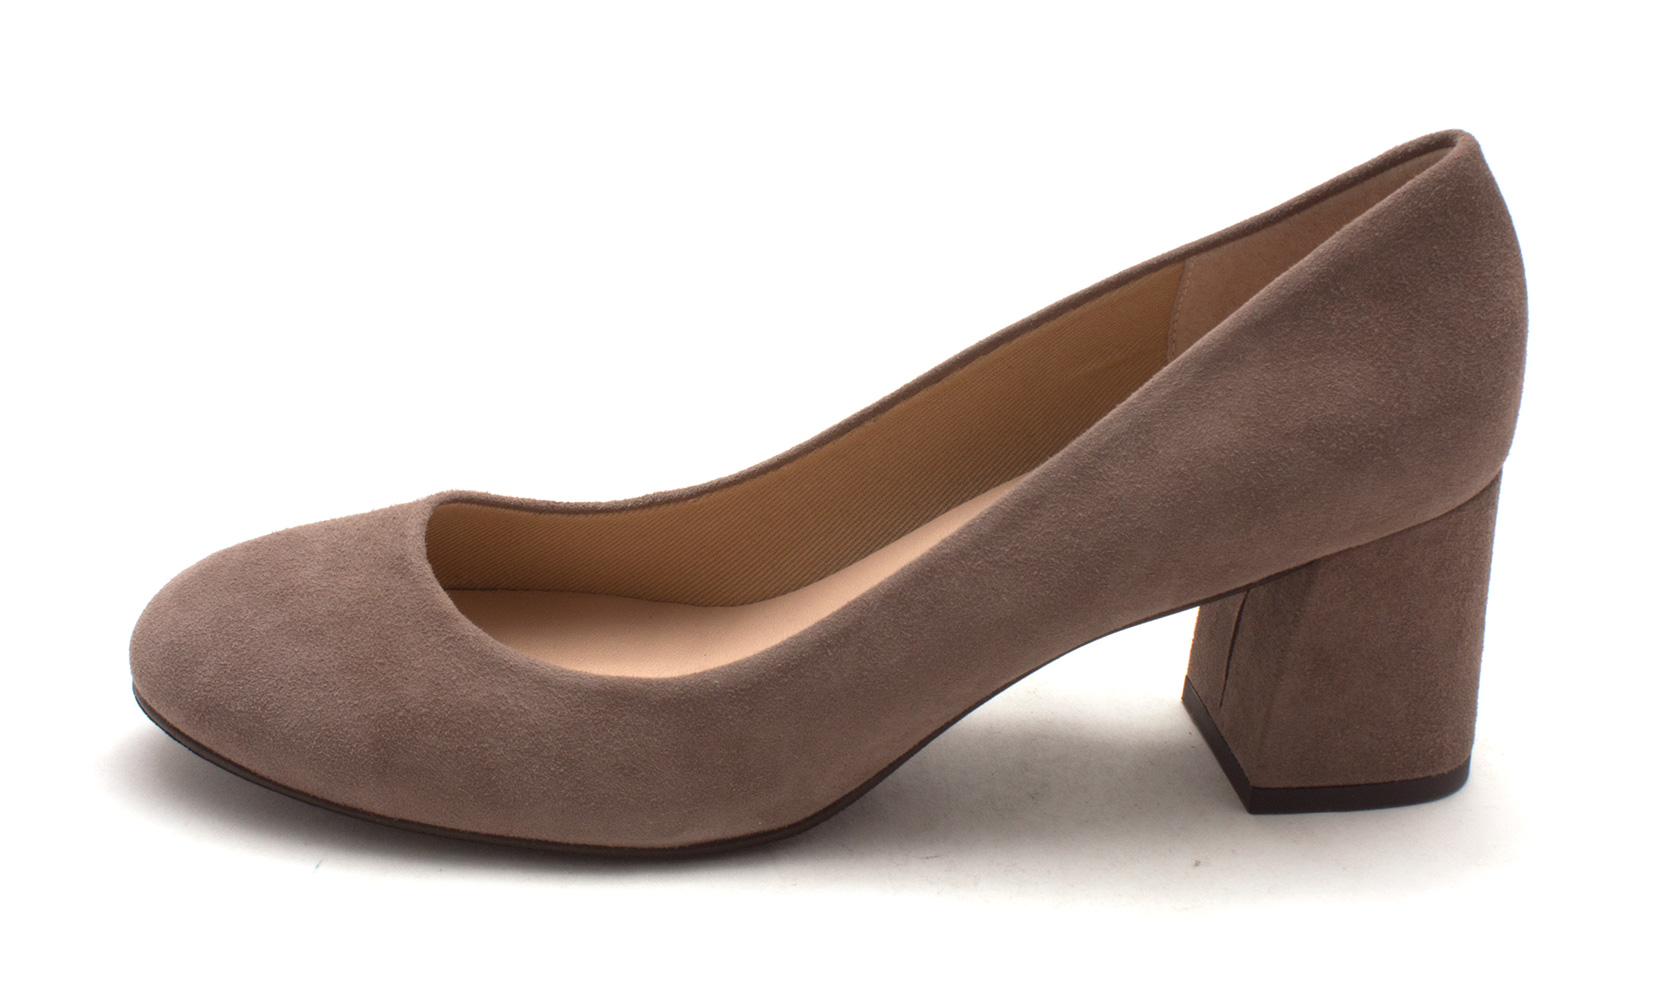 French Sole Womens TRANCE Suede Round Toe Classic Pumps Taupe Suede Size 11.0